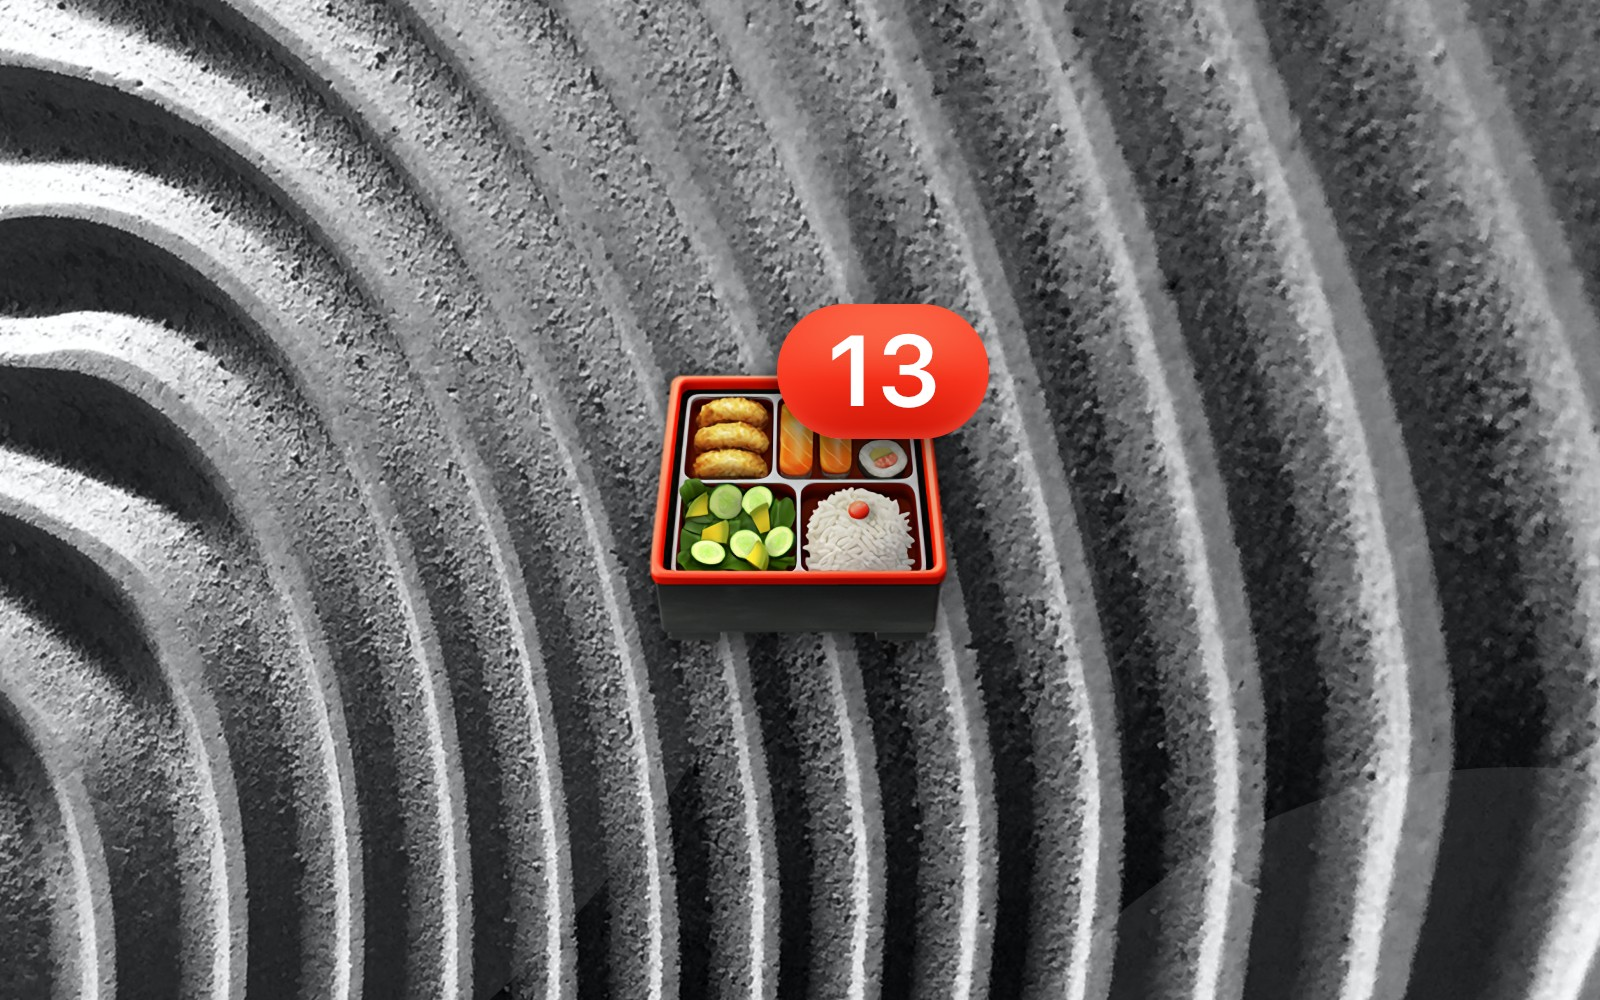 Bento box emoji with number 13 badge resting on a grayscale textured wavy background